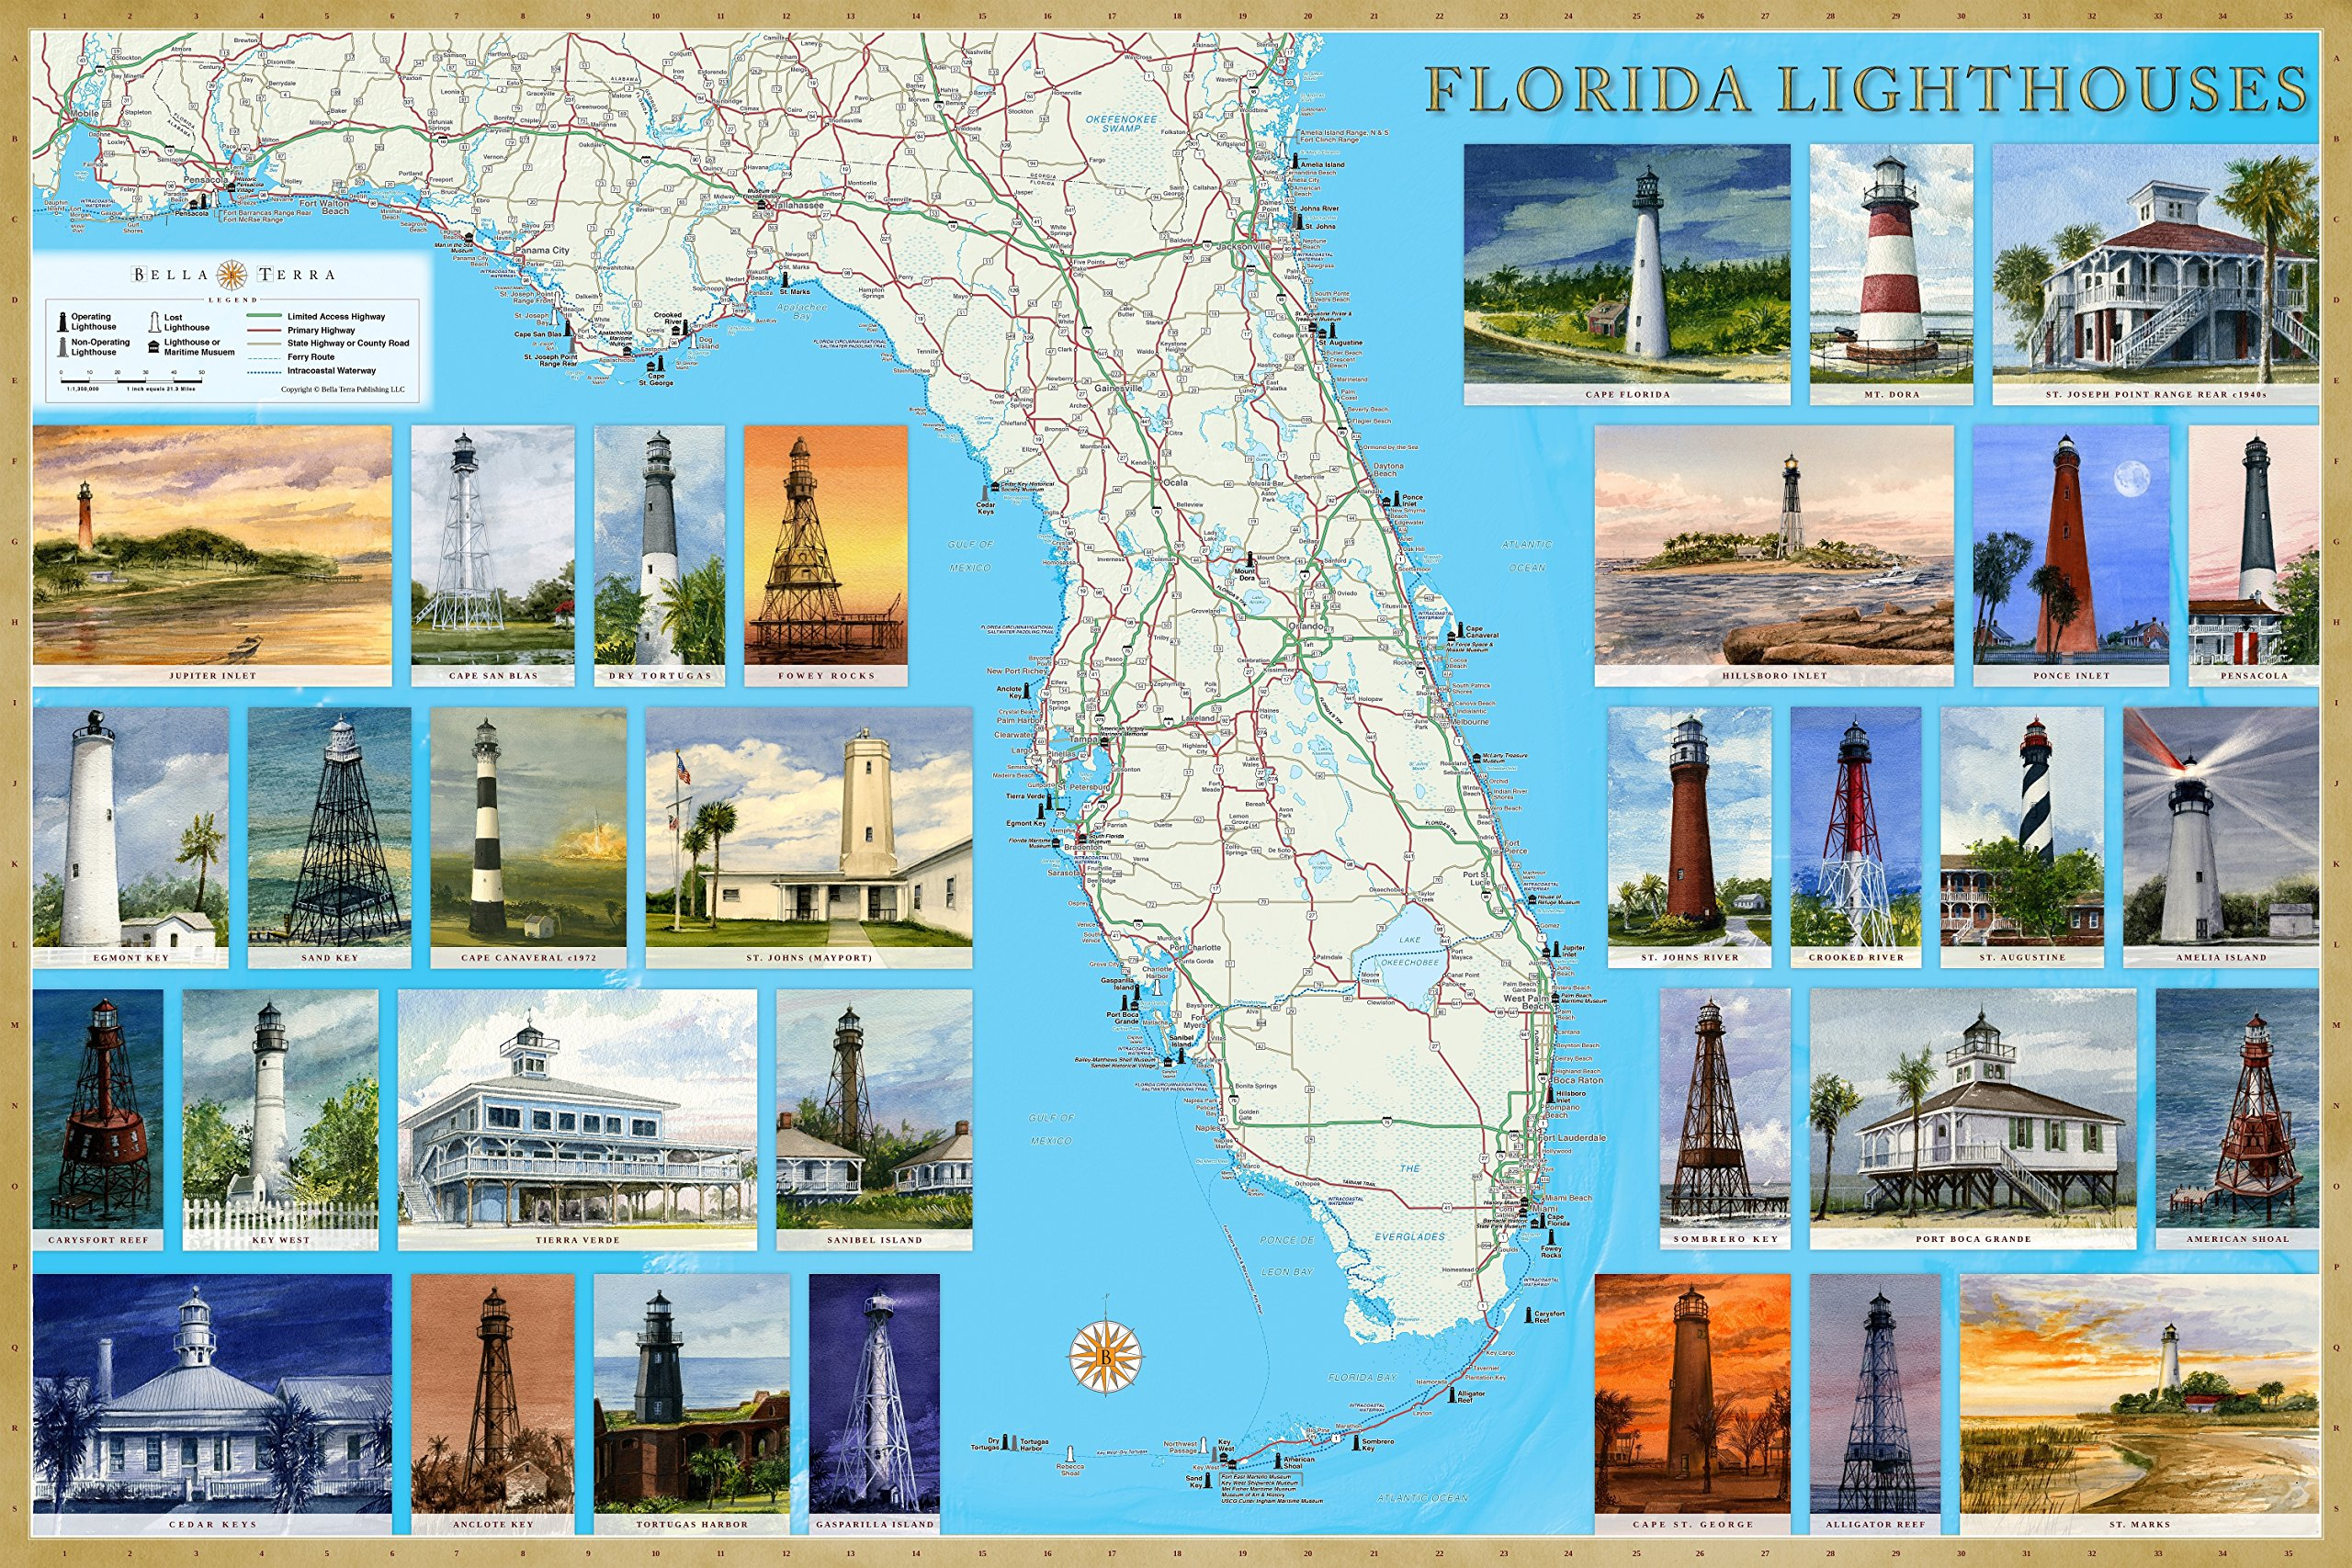 Florida Lighthouses Illustrated Map Guide Laminated Poster Bella Stander Gerald C Hill Gerald C Hill 9781888216318 Amazon Com Books